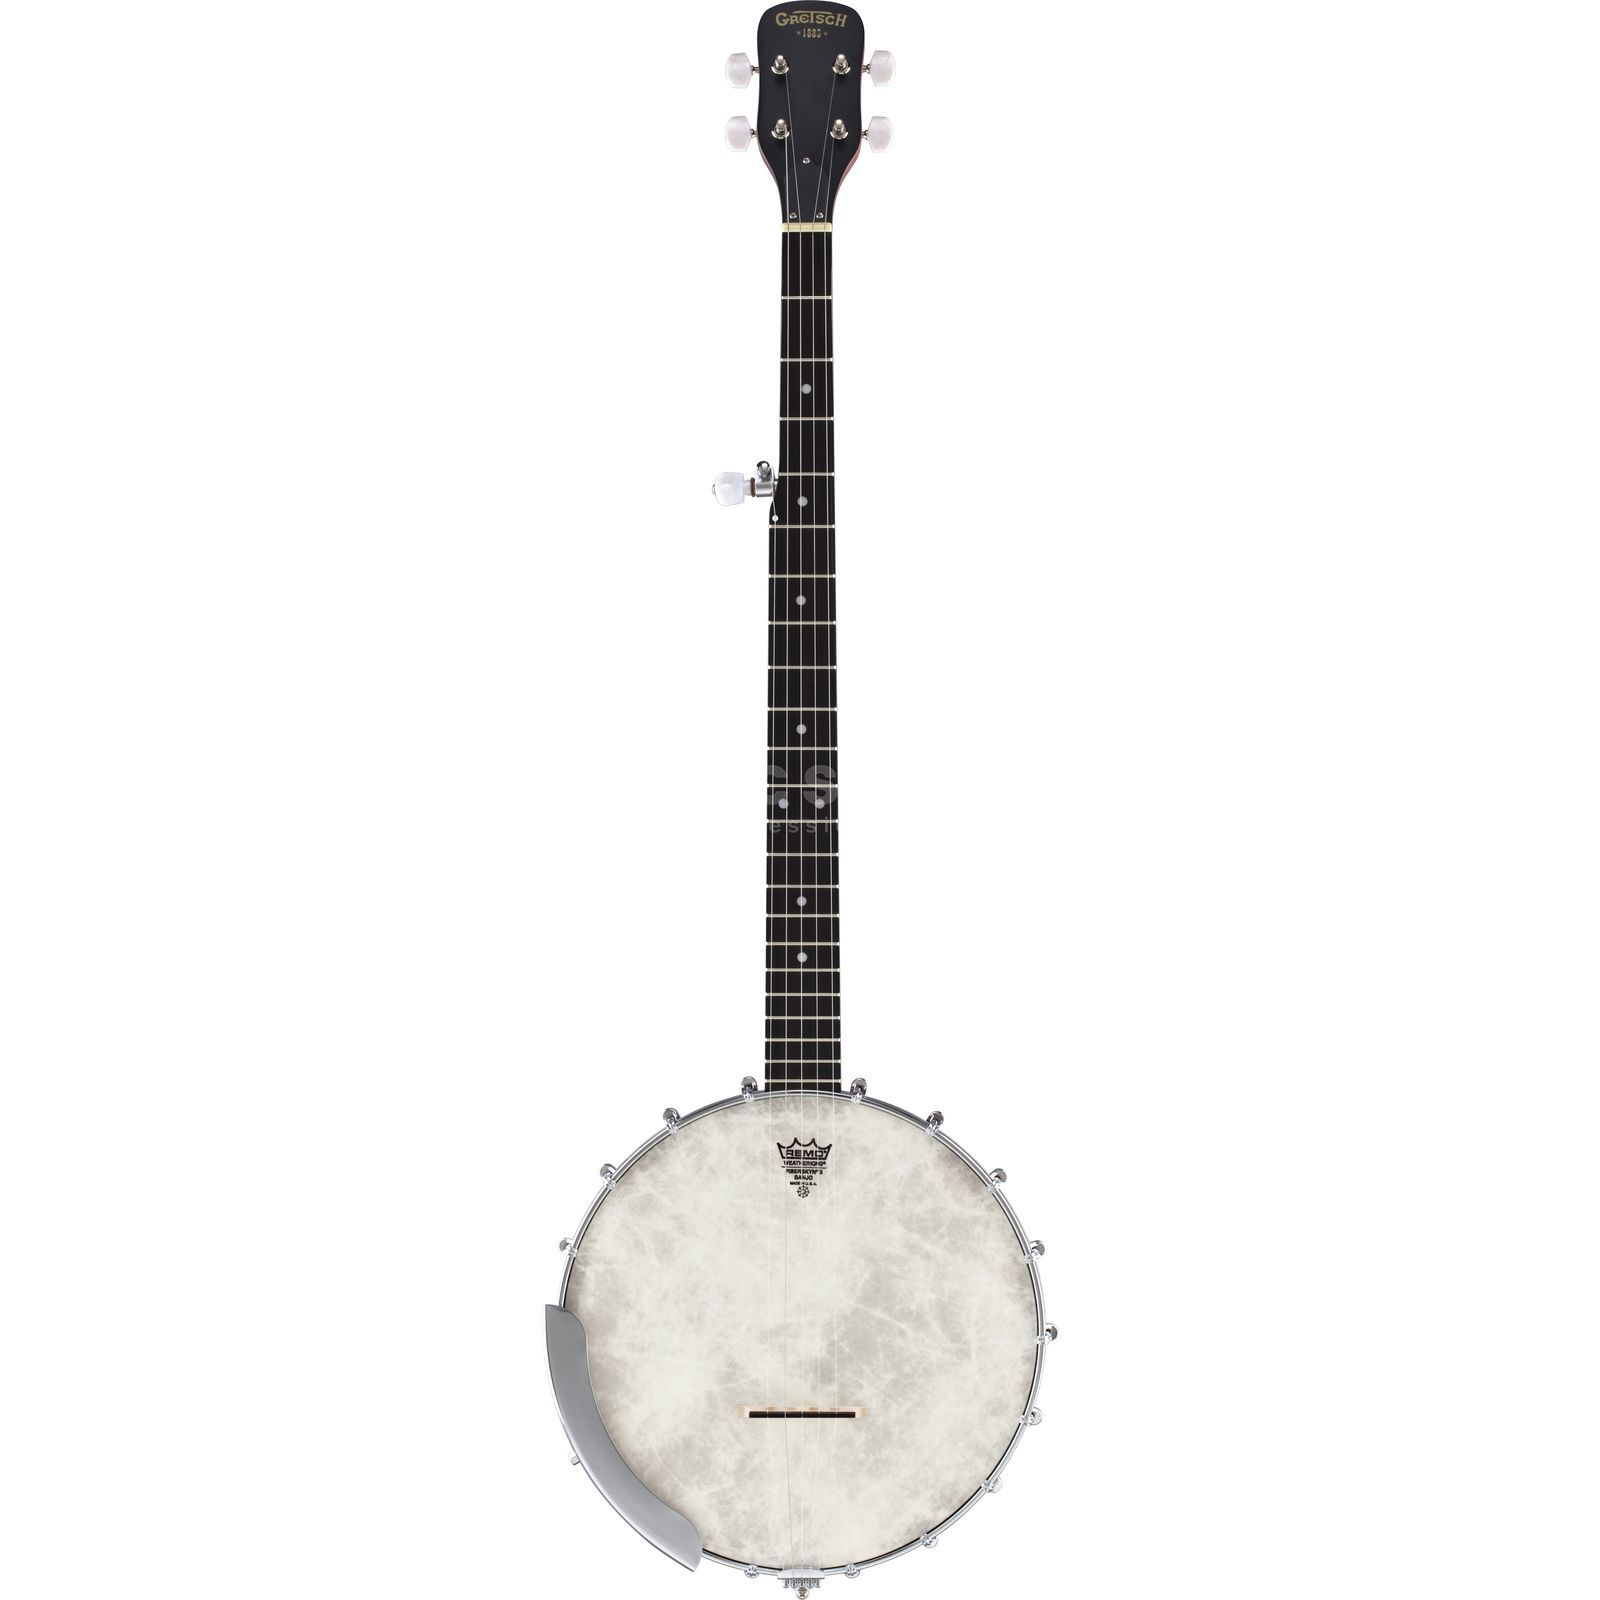 Gretsch G9450 Dixie 5-String Open Back Banjo Produktbild